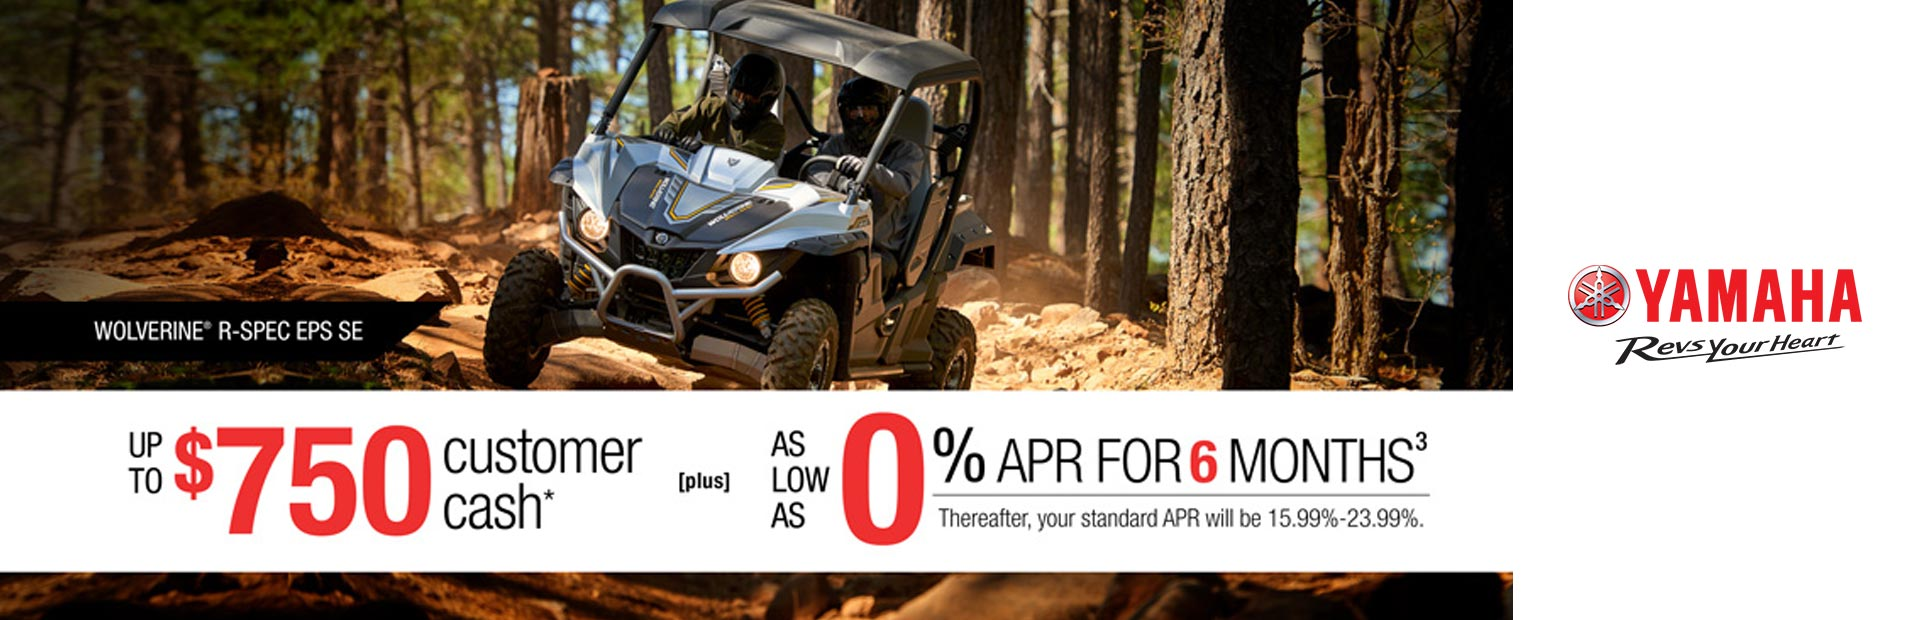 Yamaha: 0% APR For 6 Months (SxS)